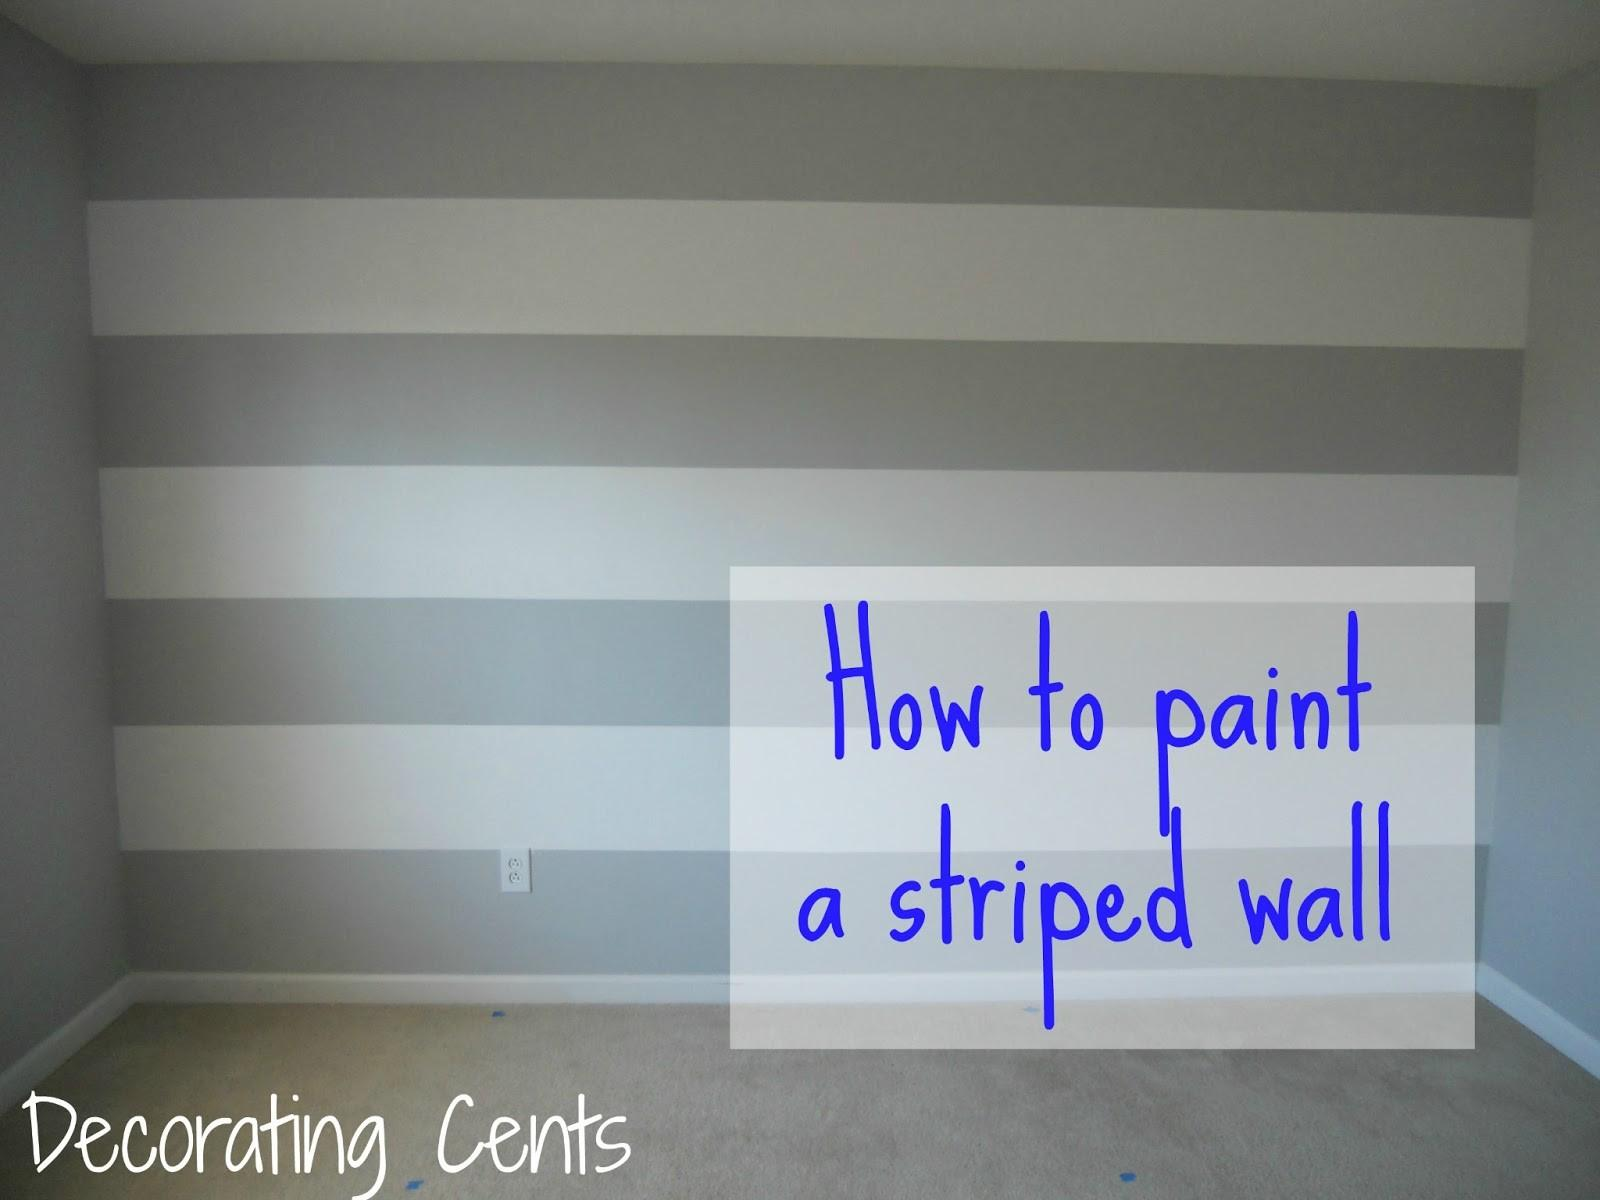 Decorating Cents Painting Striped Wall